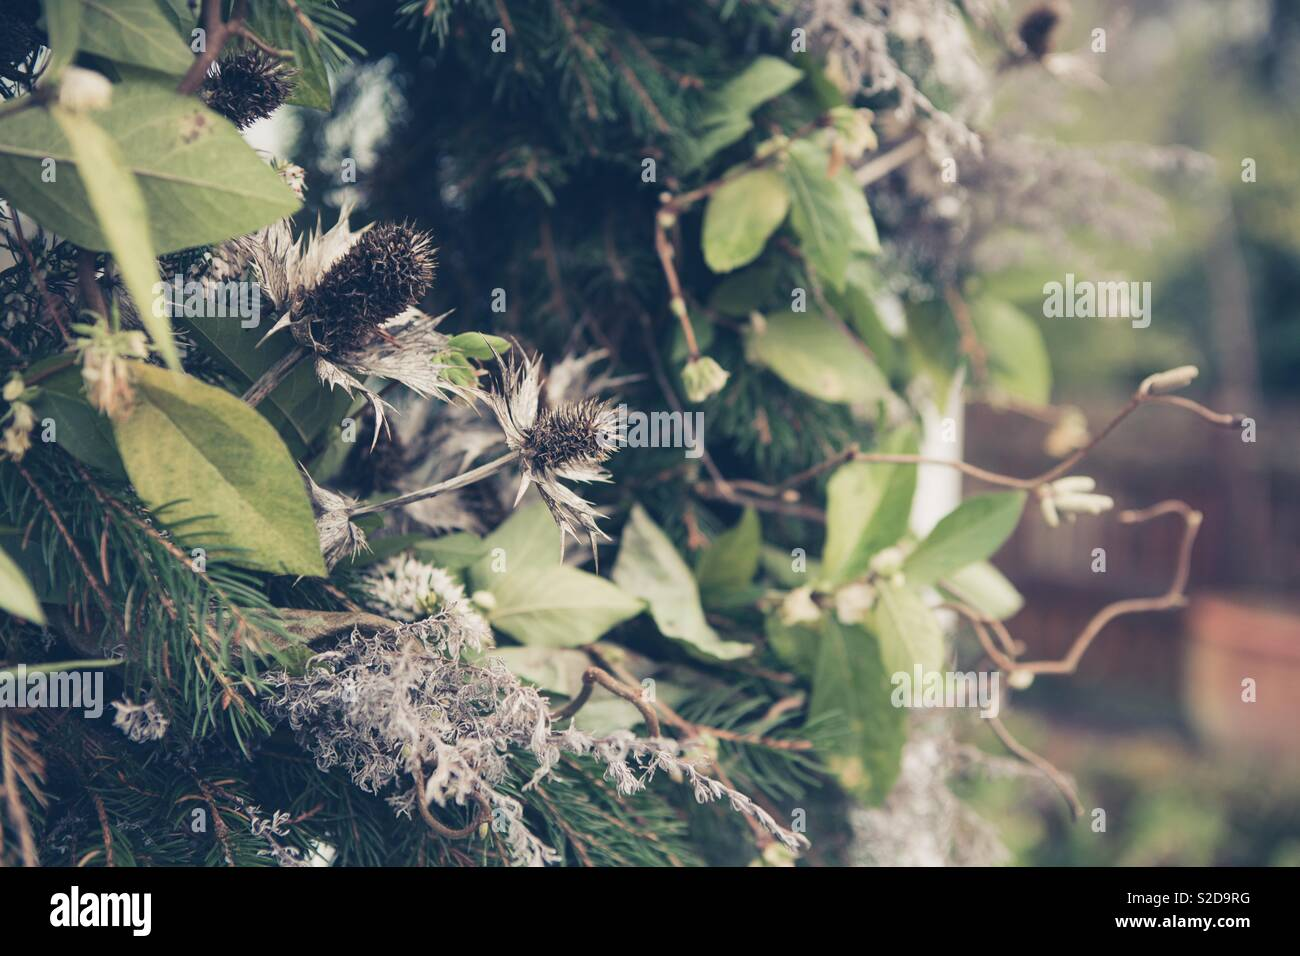 Close up of natural English country garden Christmas wreath. Festive wreath with neutral colours, dried flowers, fir tree and thistles - Stock Image